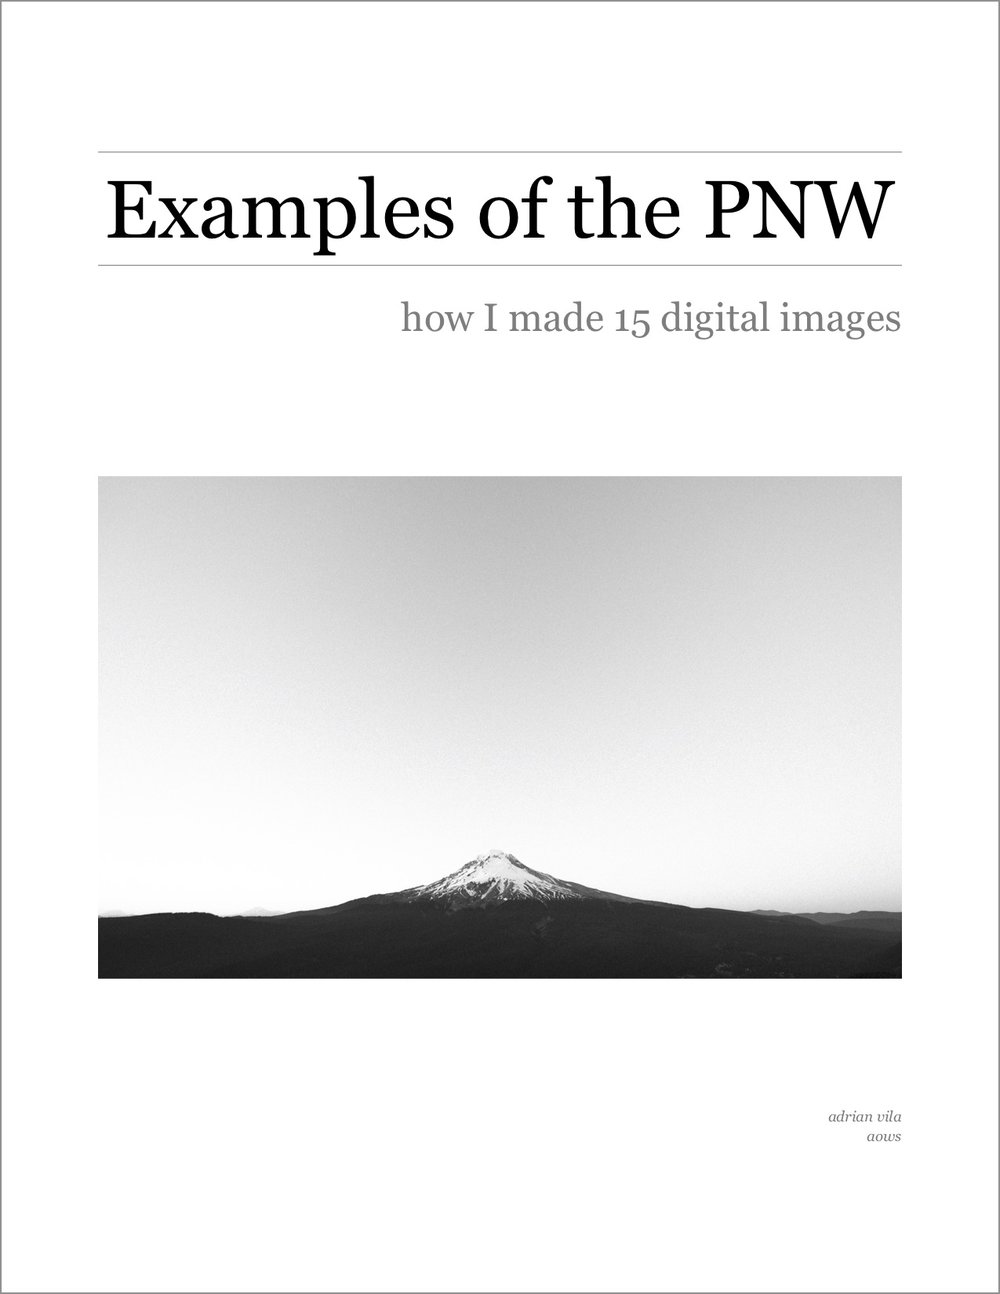 Examples of the PNW cover.jpg